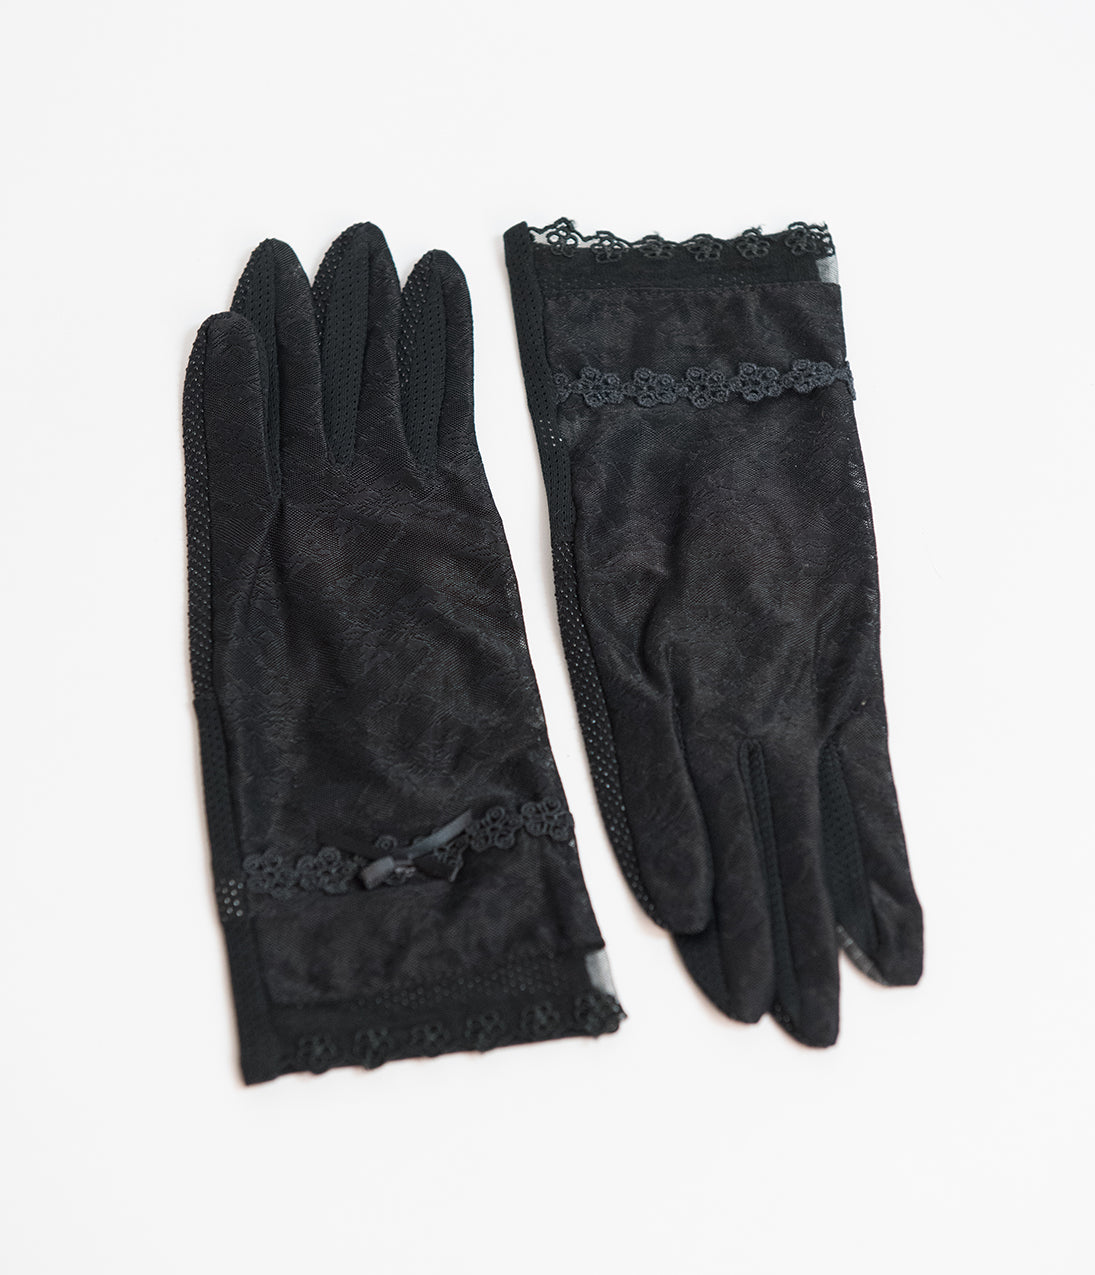 Victorian Gloves | Victorian Accessories Unique Vintage Black Mesh Lace Wrist Gloves $20.00 AT vintagedancer.com